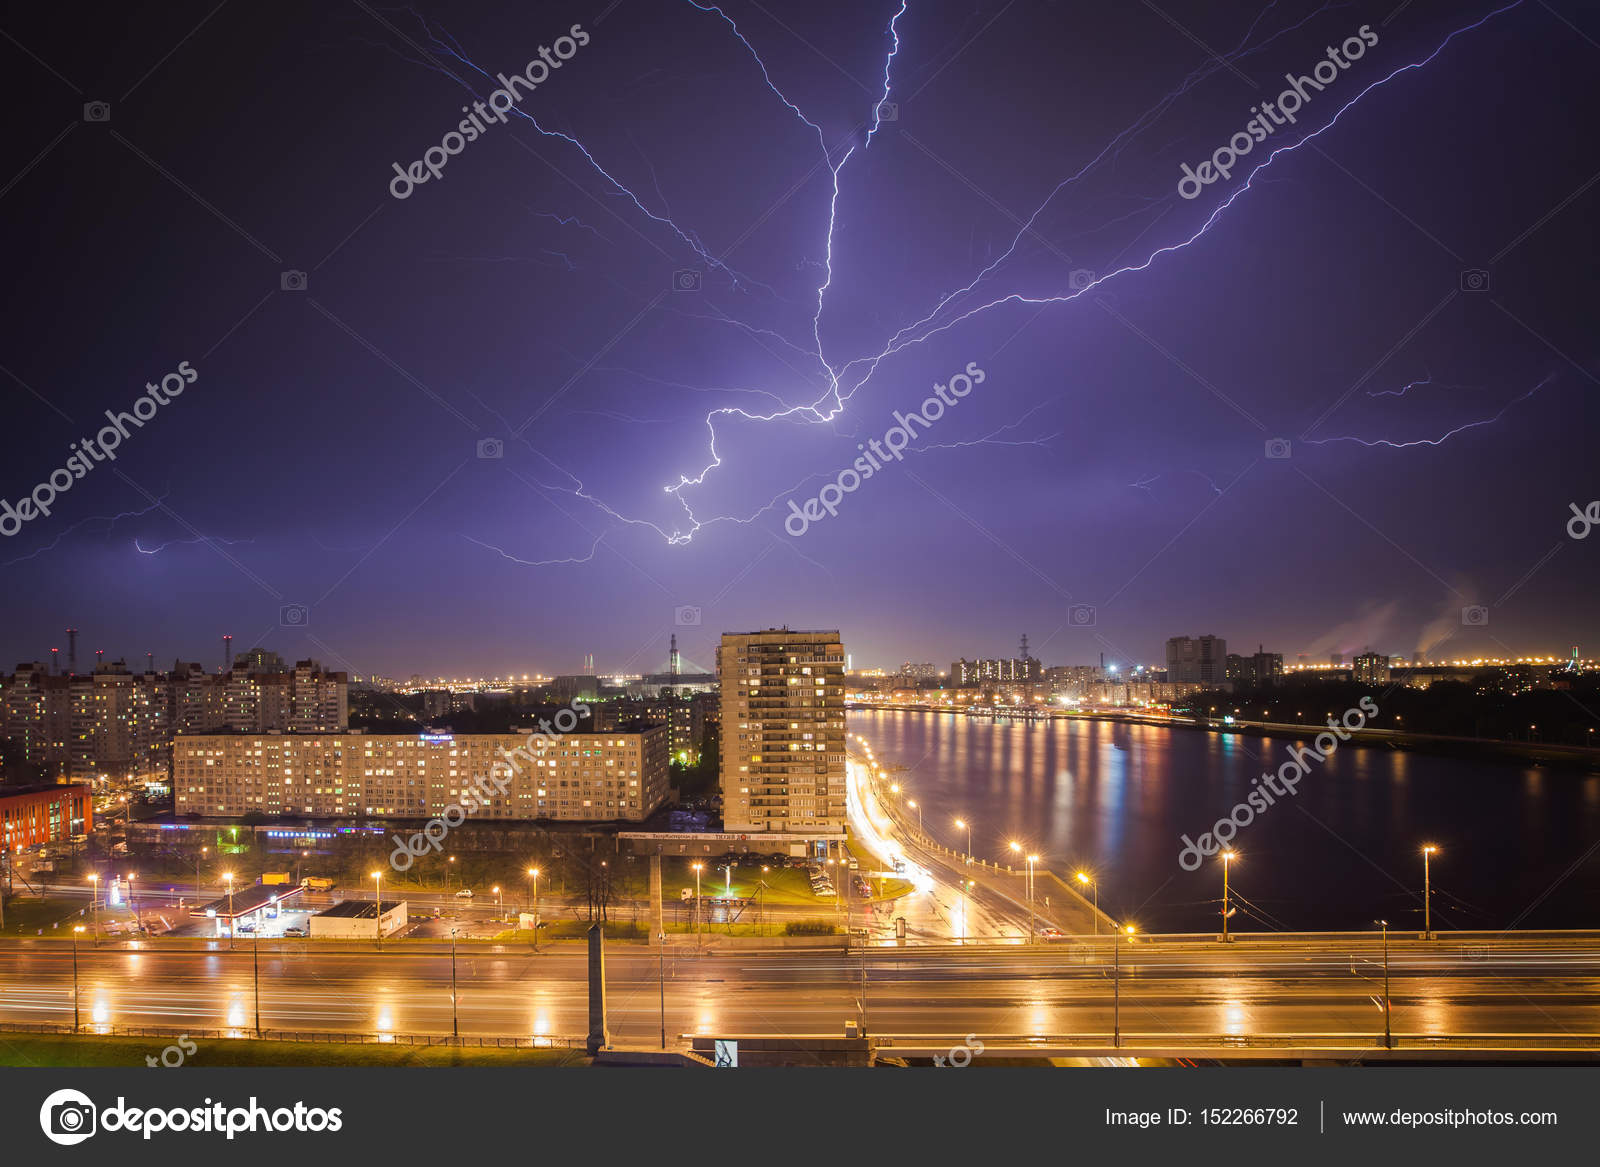 Very Big Lightning On The City Night Cityscape With Strong Majestic View Town In Dark Stormy Dramatic Sky Severe